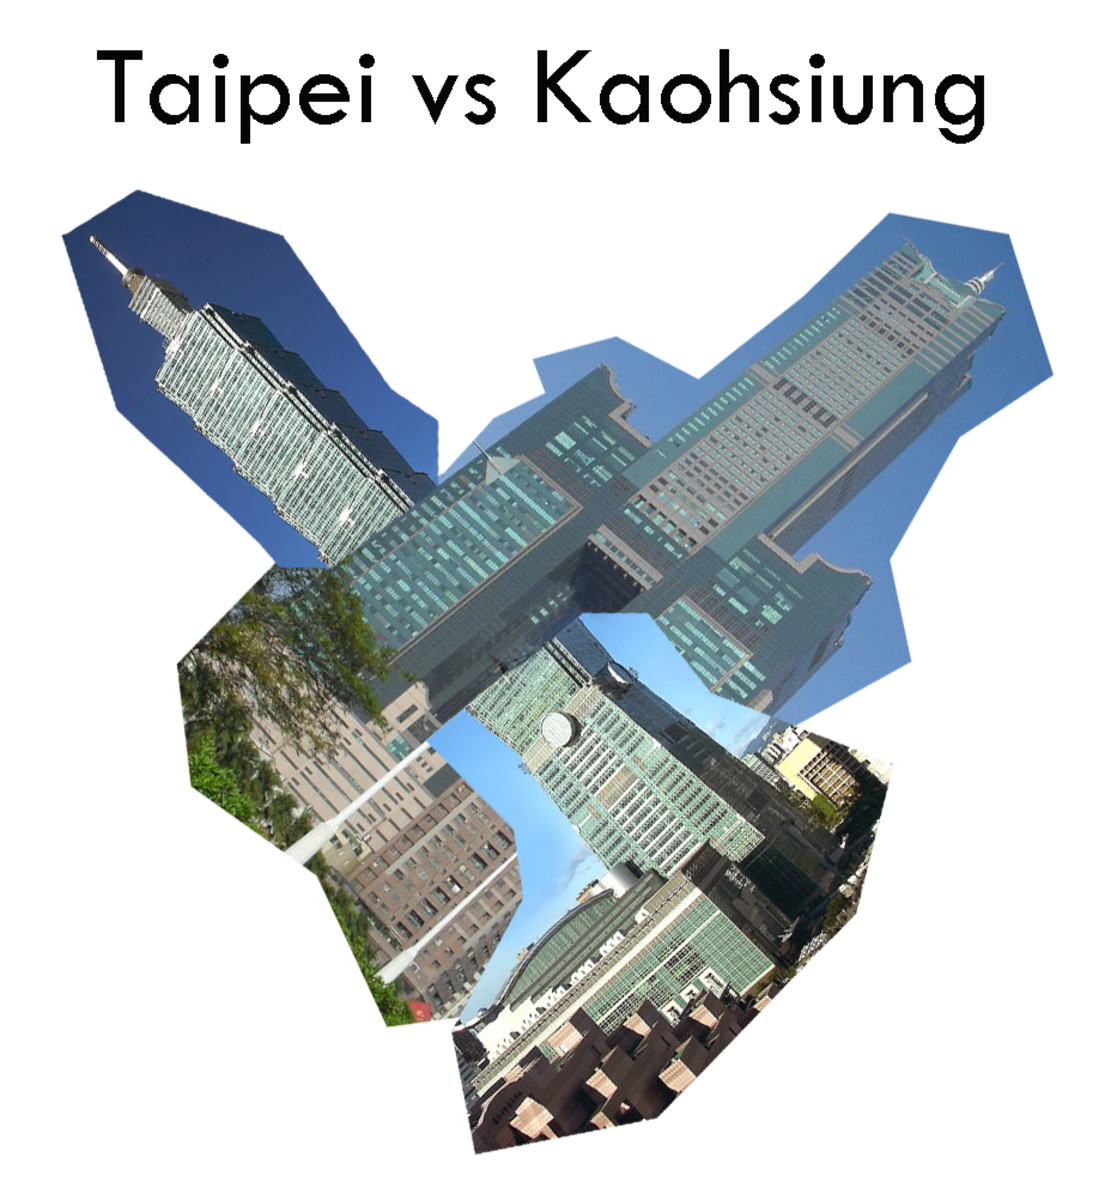 Moving to Taiwan: Choosing Between Taipei and Kaohsiung